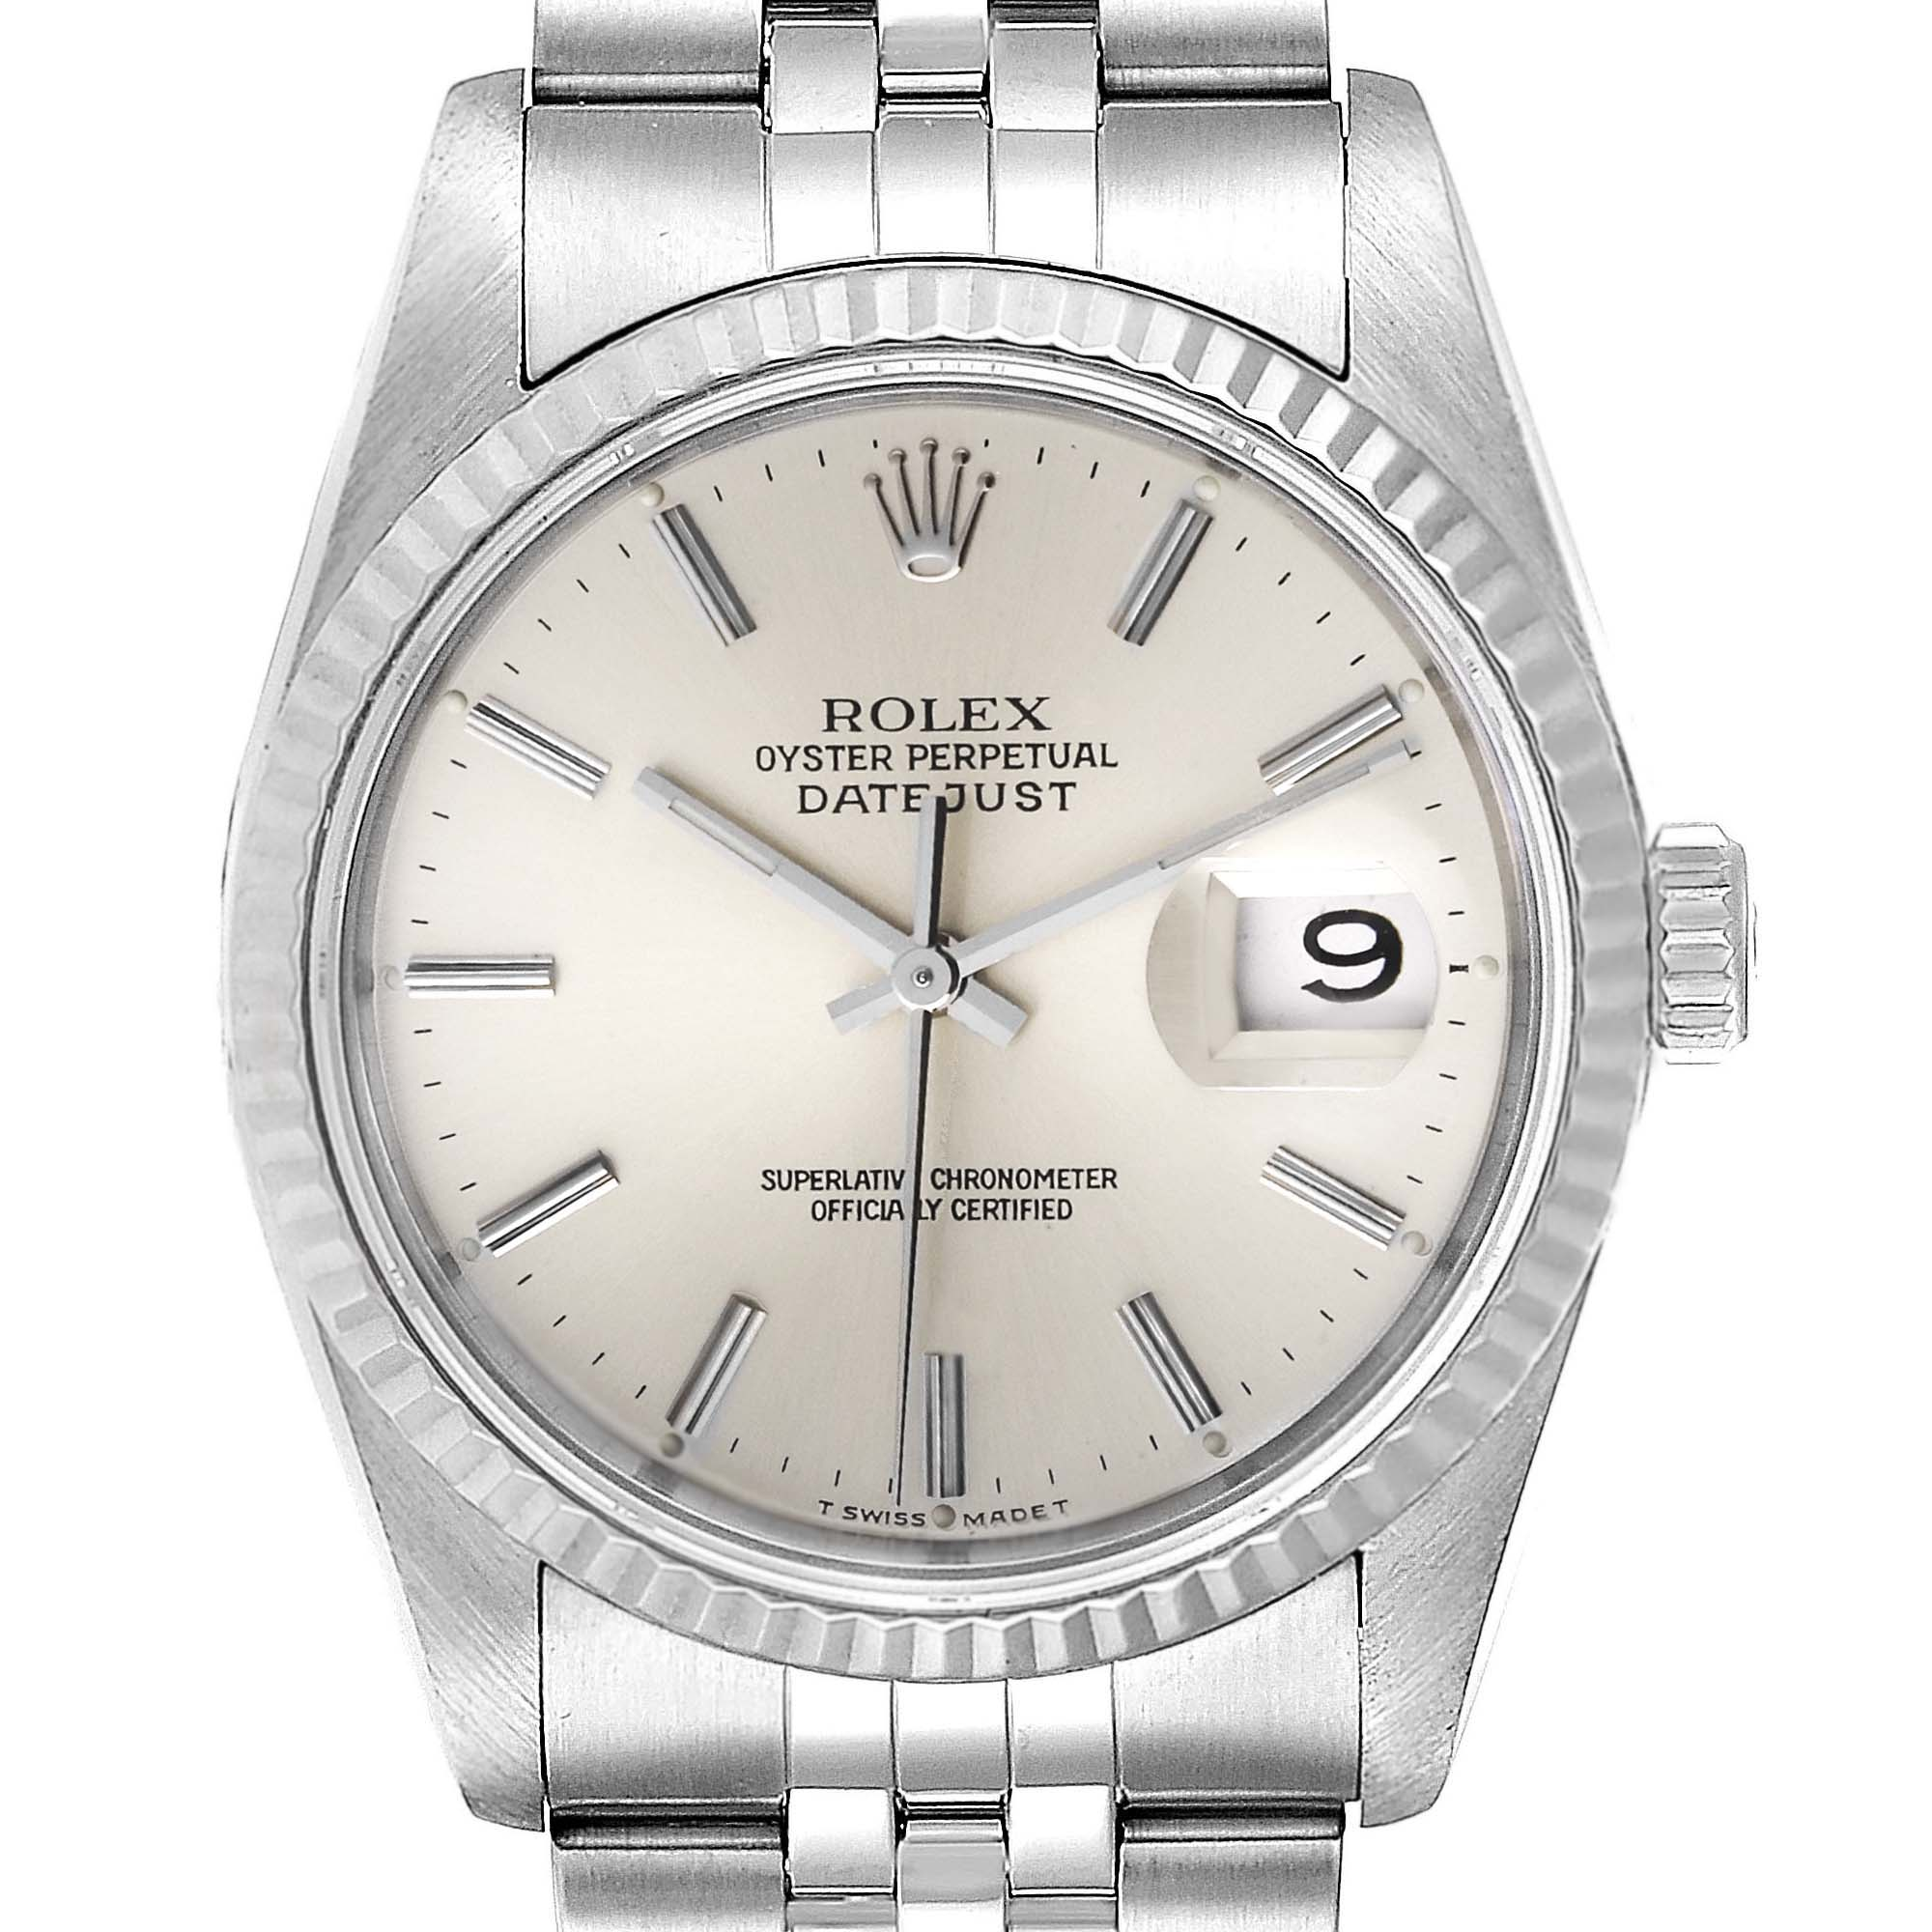 Rolex Datejust Silver Dial Fluted Bezel Steel White Gold Mens Watch 16234 PARTIAL PAYMENT